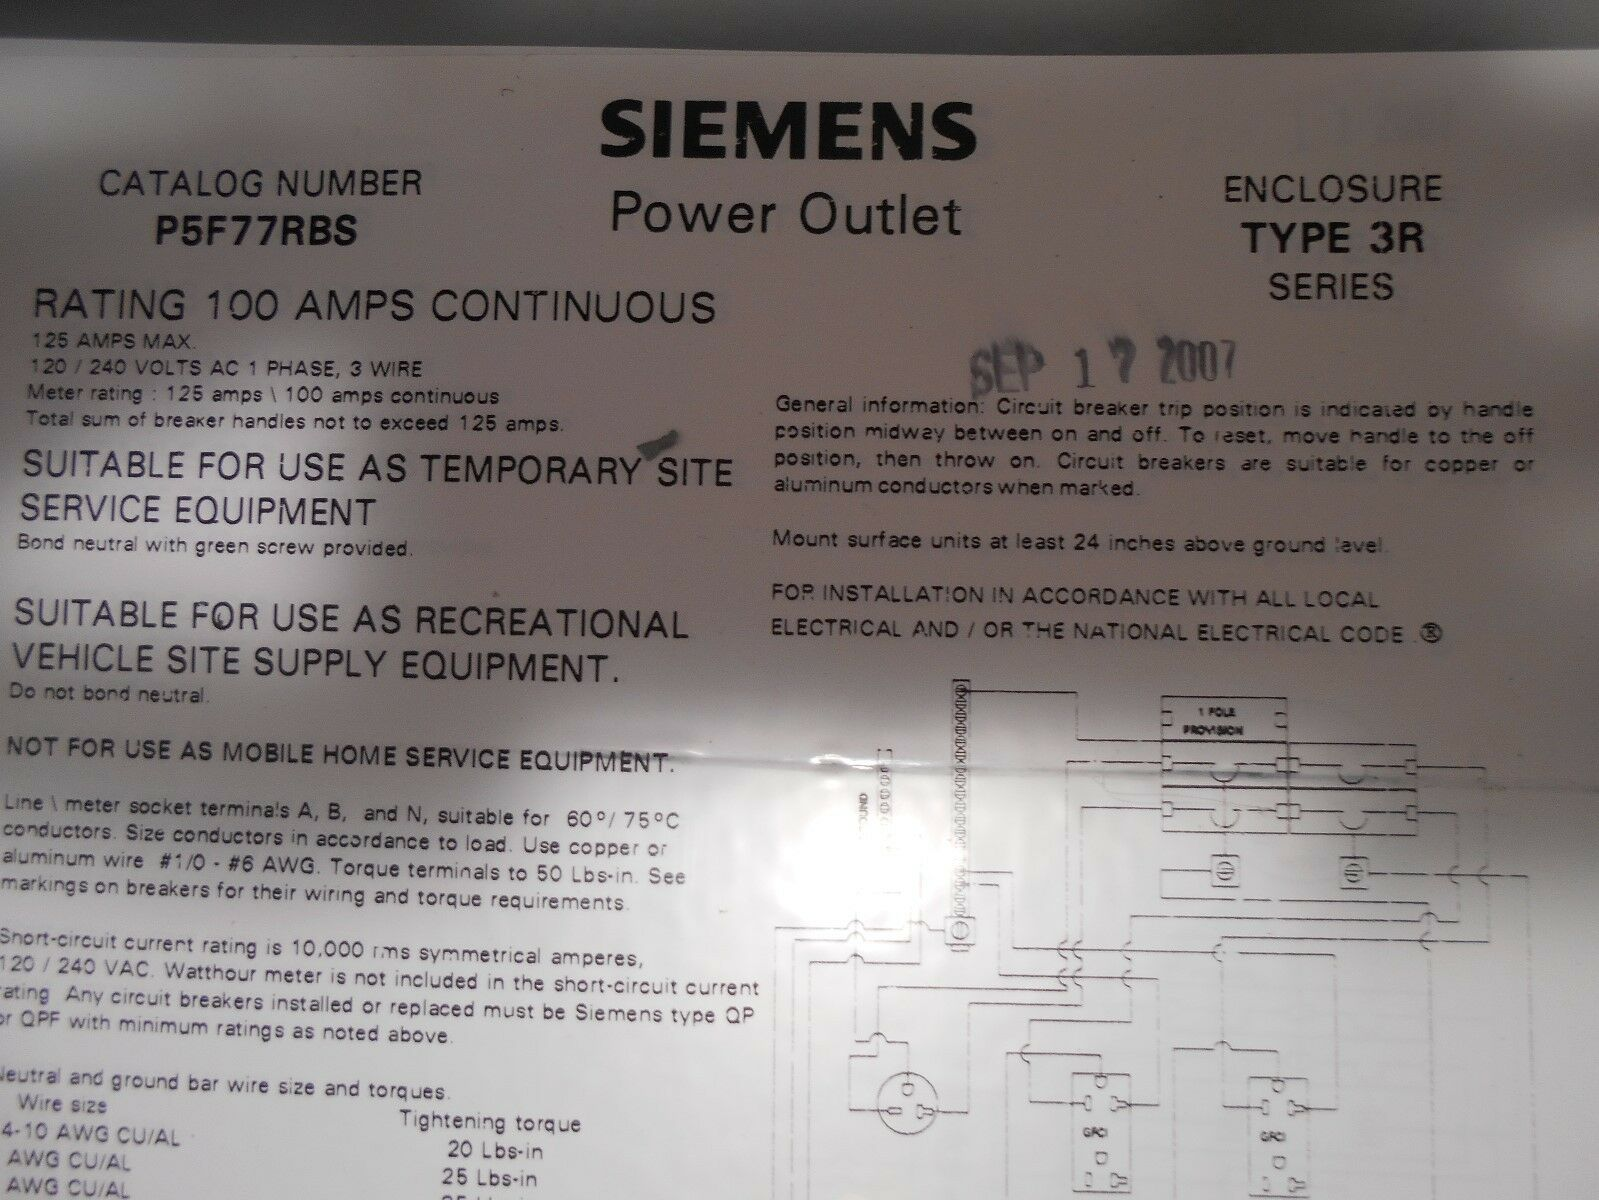 Wonderful 125 amp service wire size ideas the best electrical siemens p5f77rbs power outlet panel 60a 120240vac 1 phase 3 wire keyboard keysfo Image collections